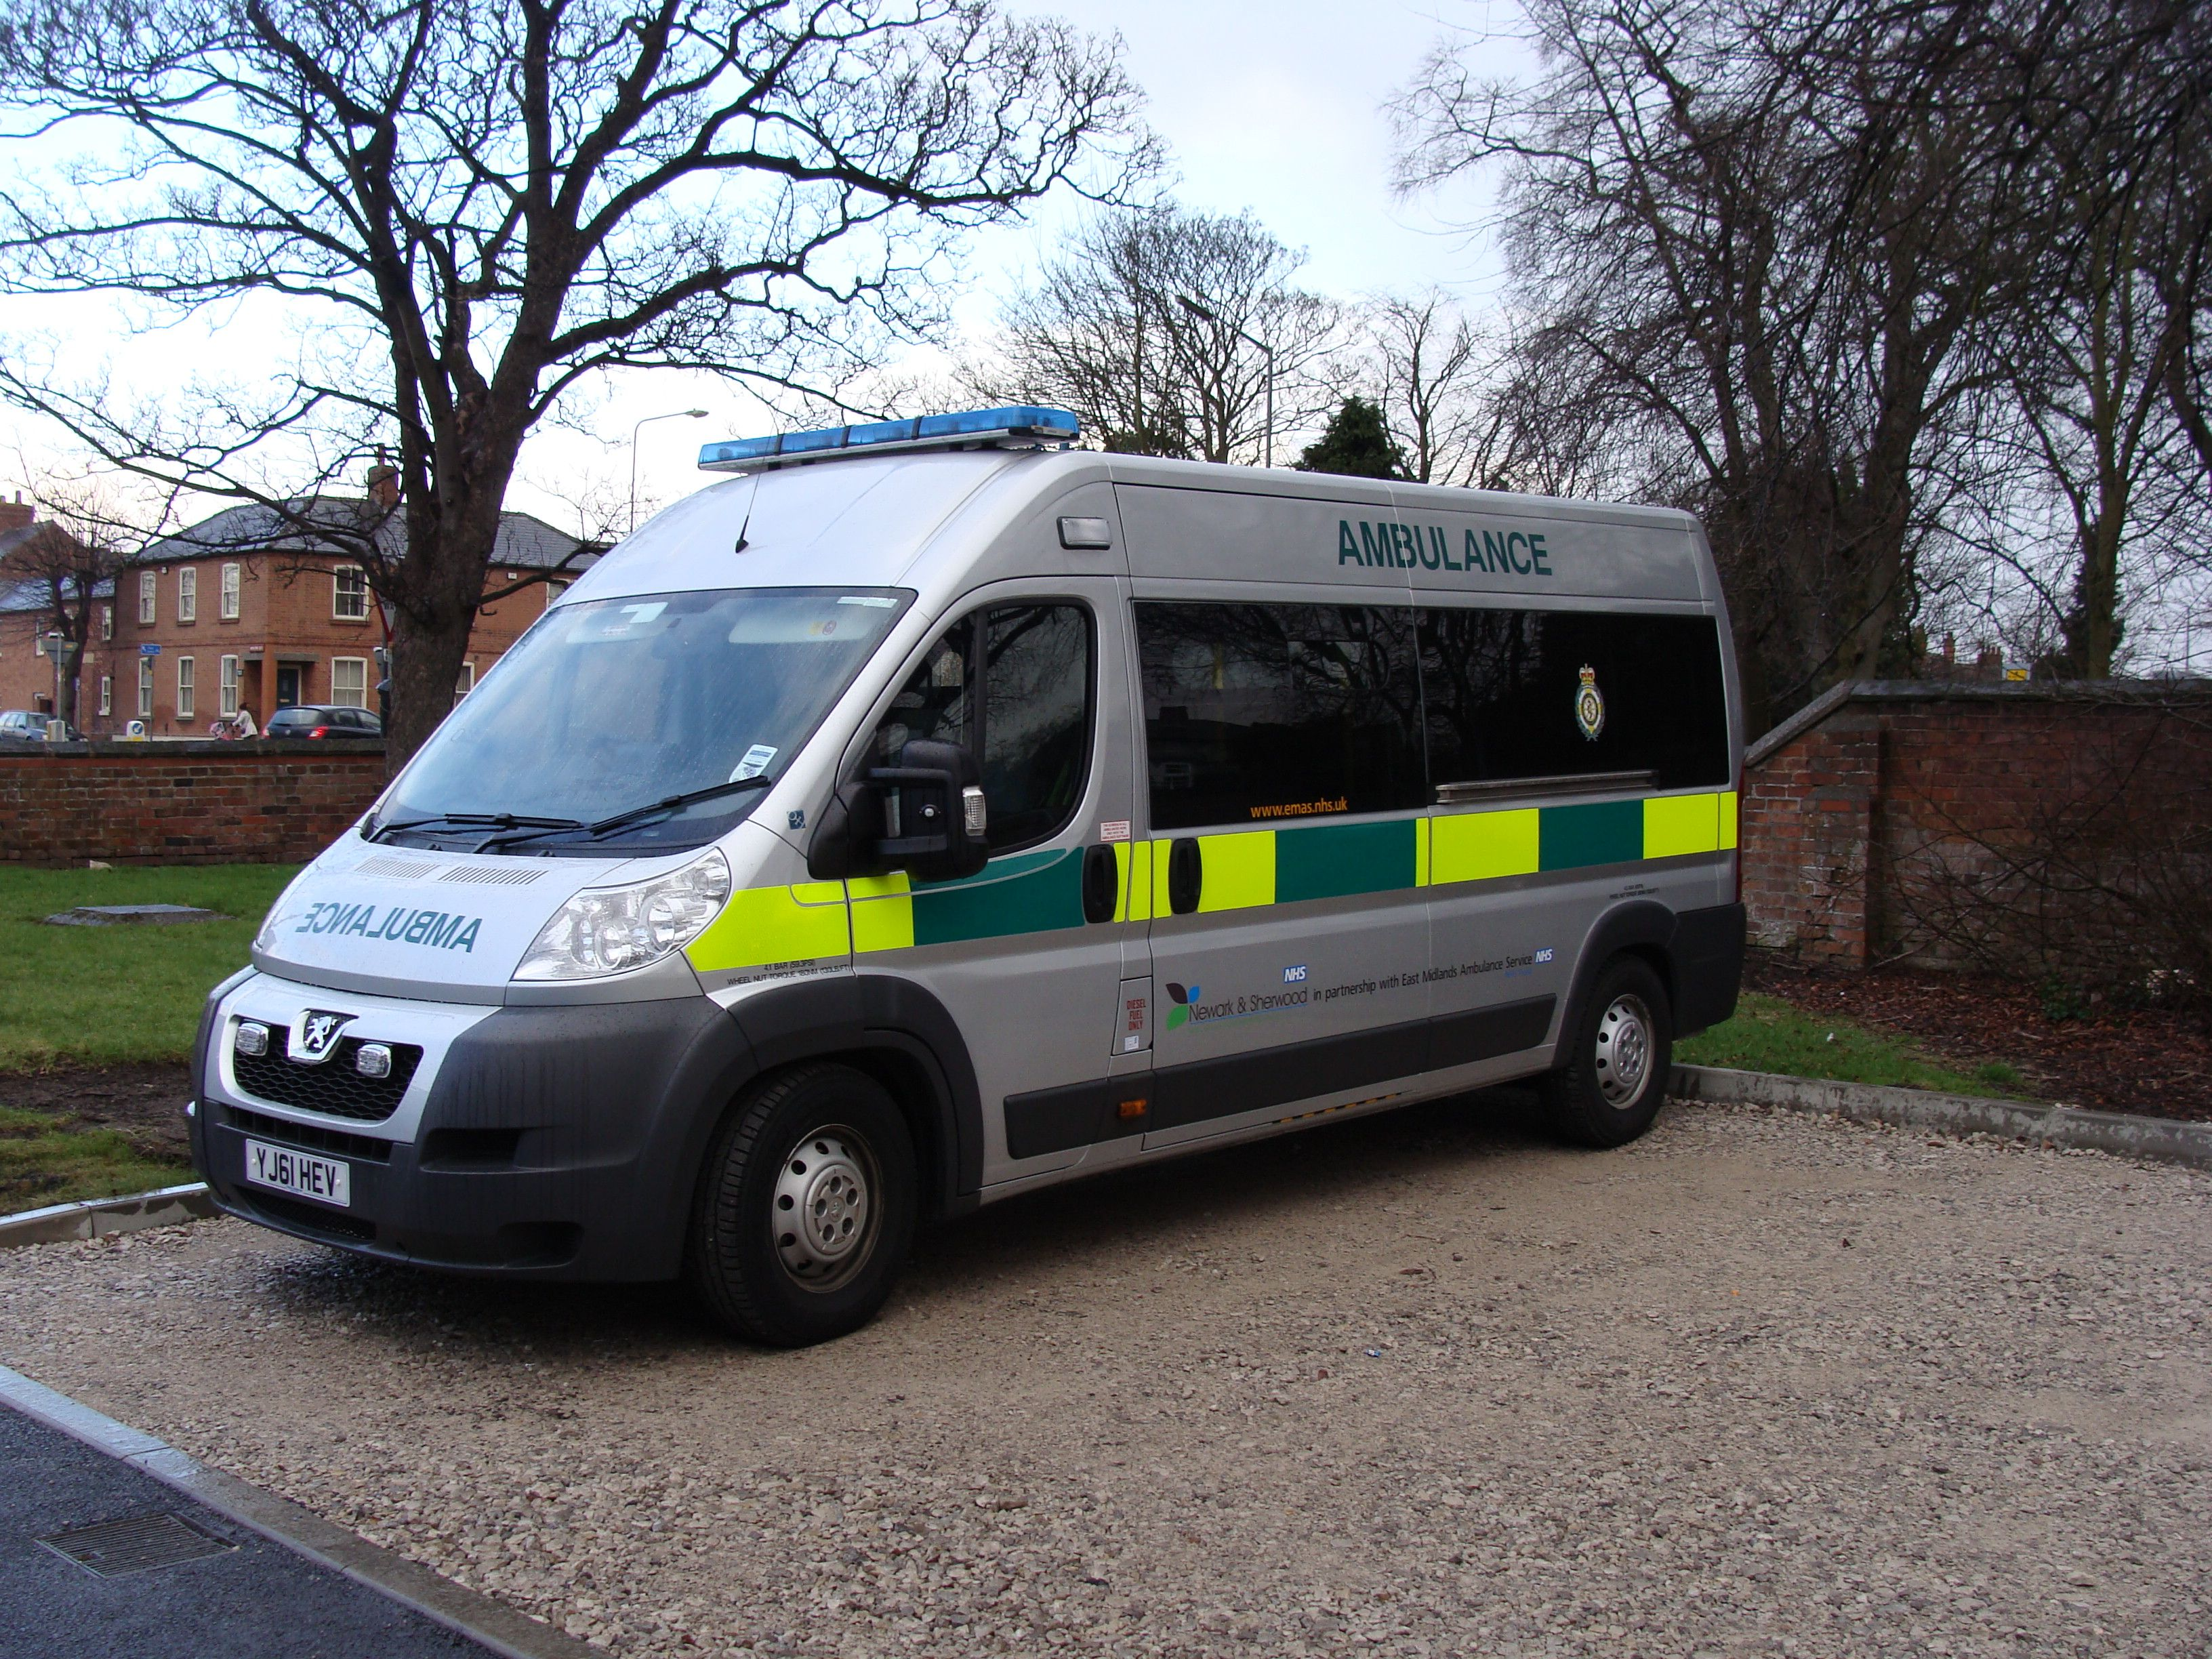 Our urgent care ambulance in partnership with east